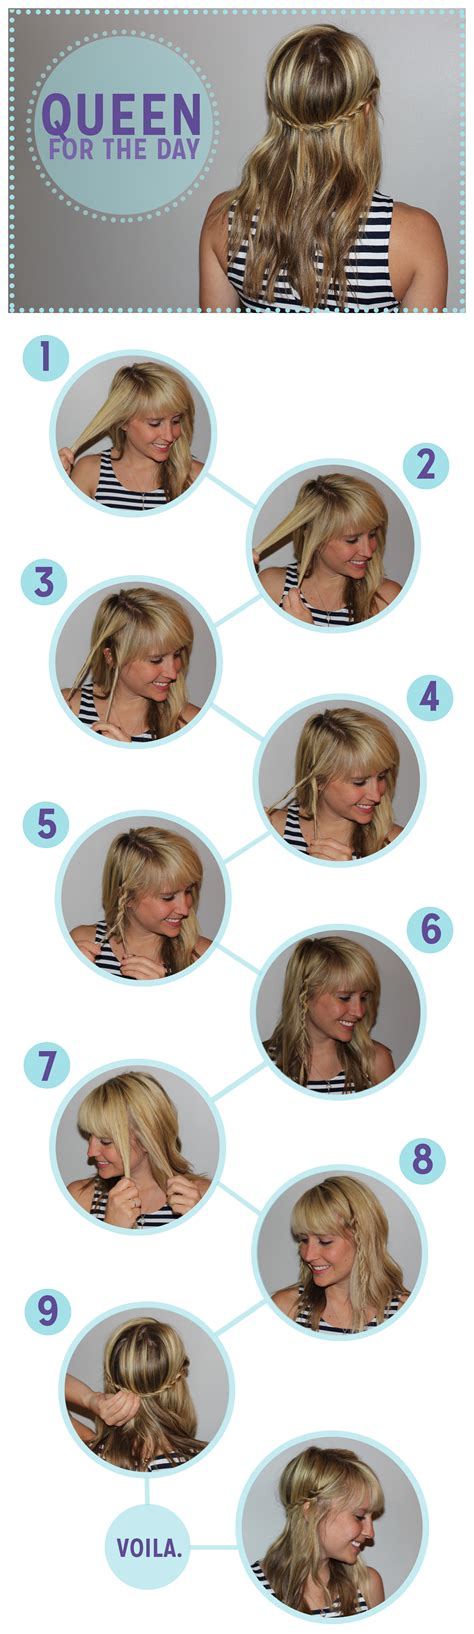 how to do the twist braid step by step diy do crown rope braid the layer loxa beauty 174